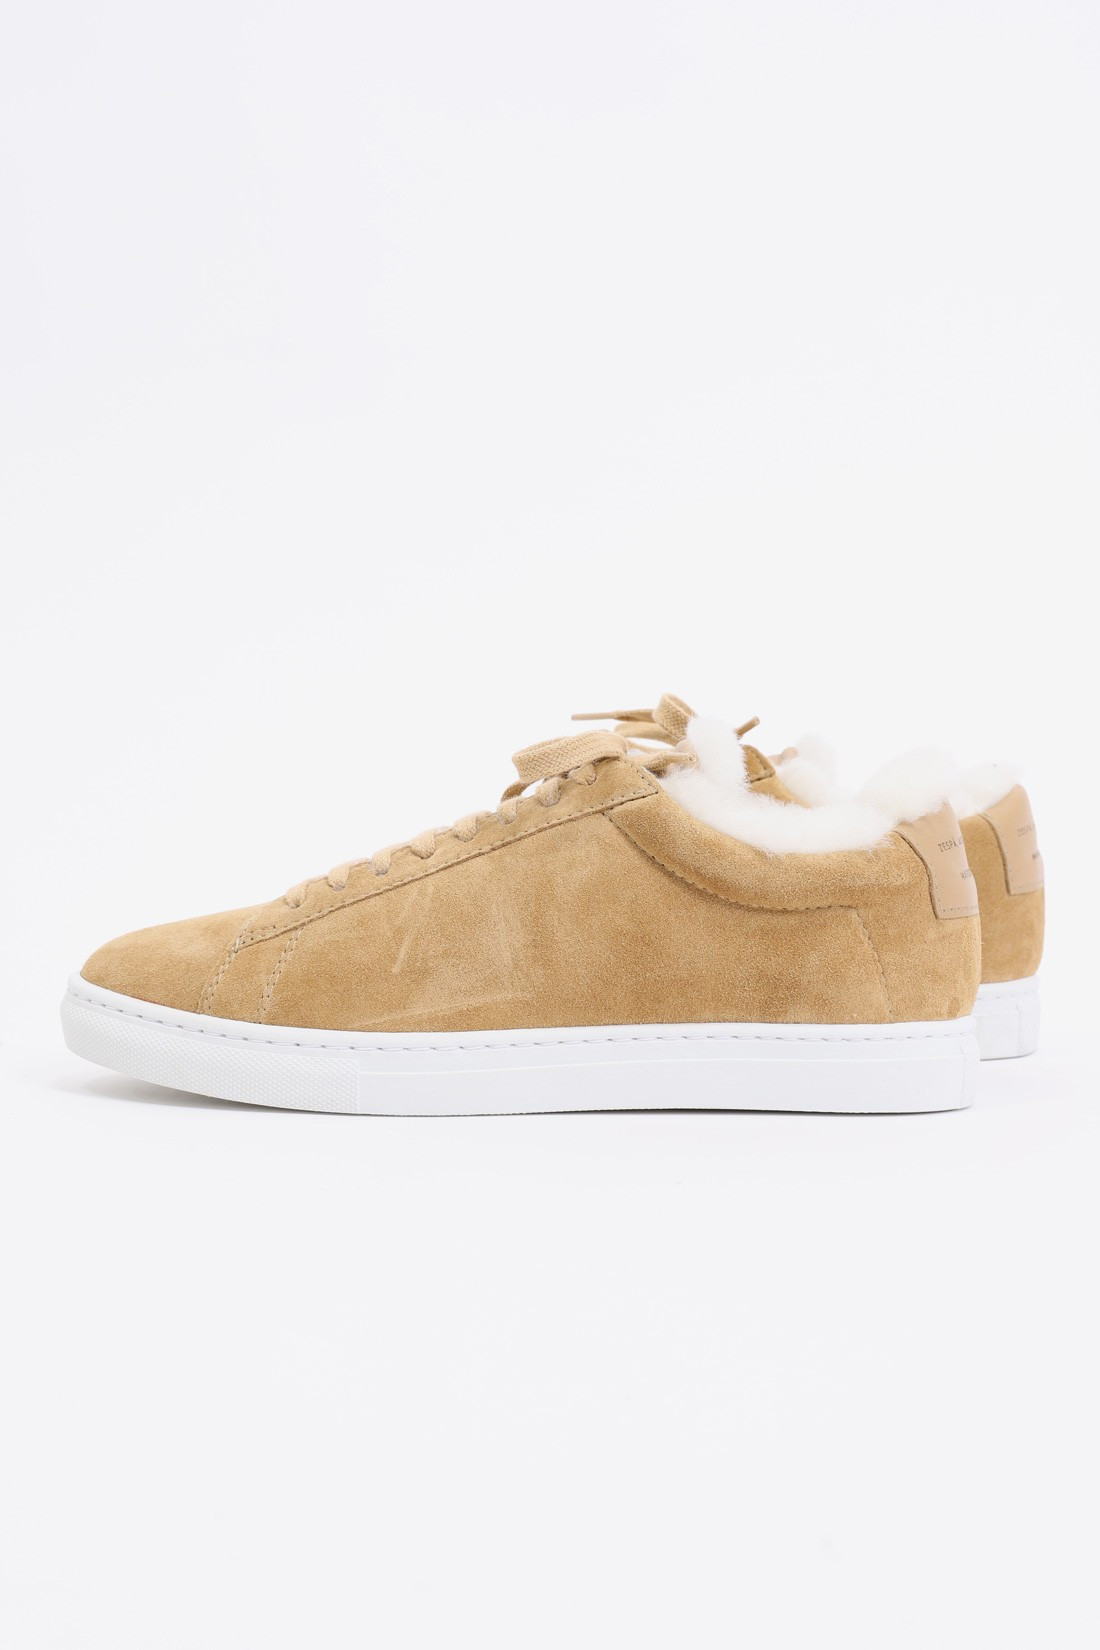 / Zsp4 suede outsole white Biscuit sherling